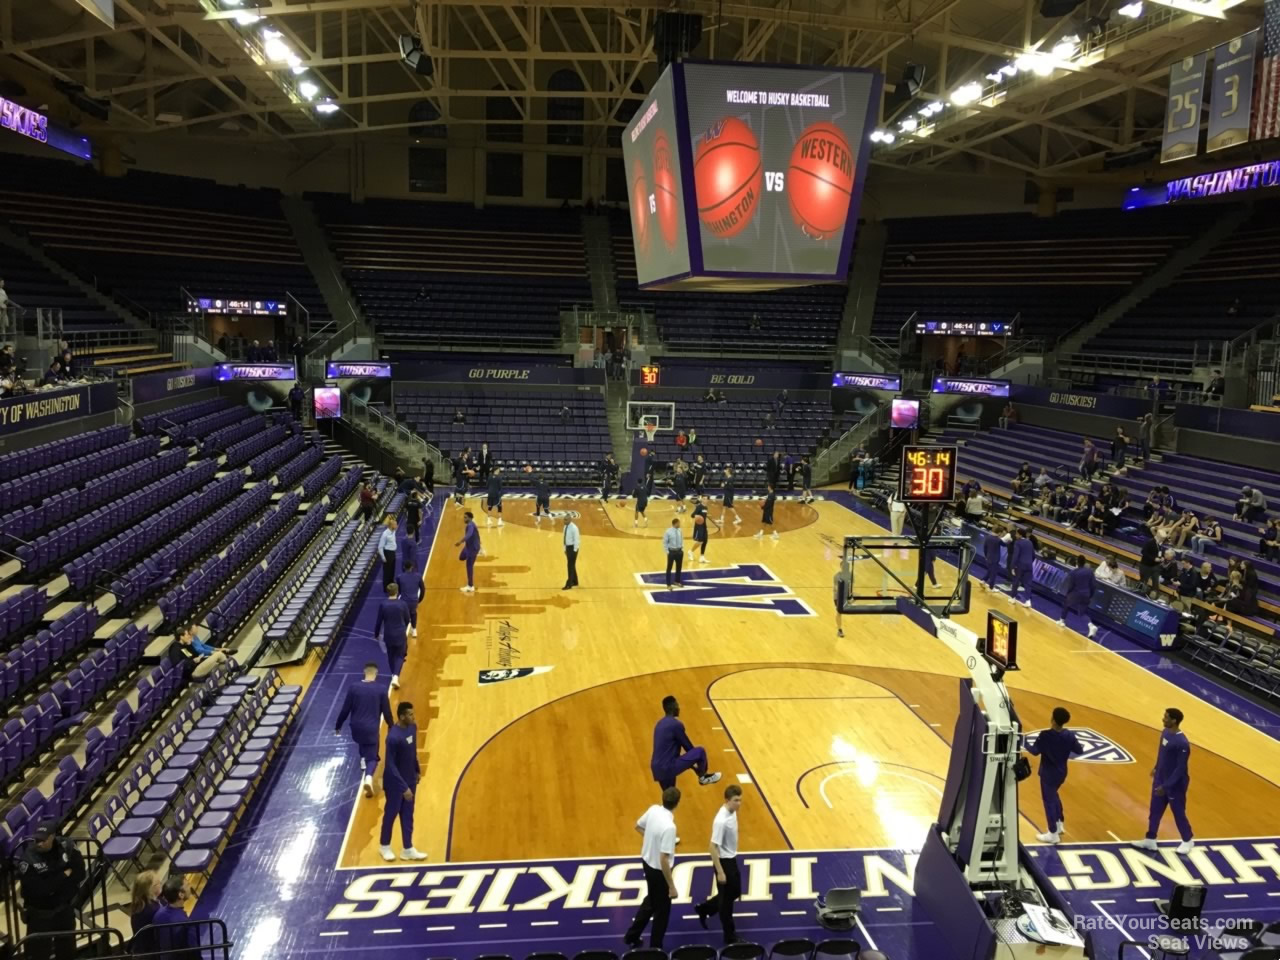 Seat View for Alaska Airlines Arena Section 5, Row 10